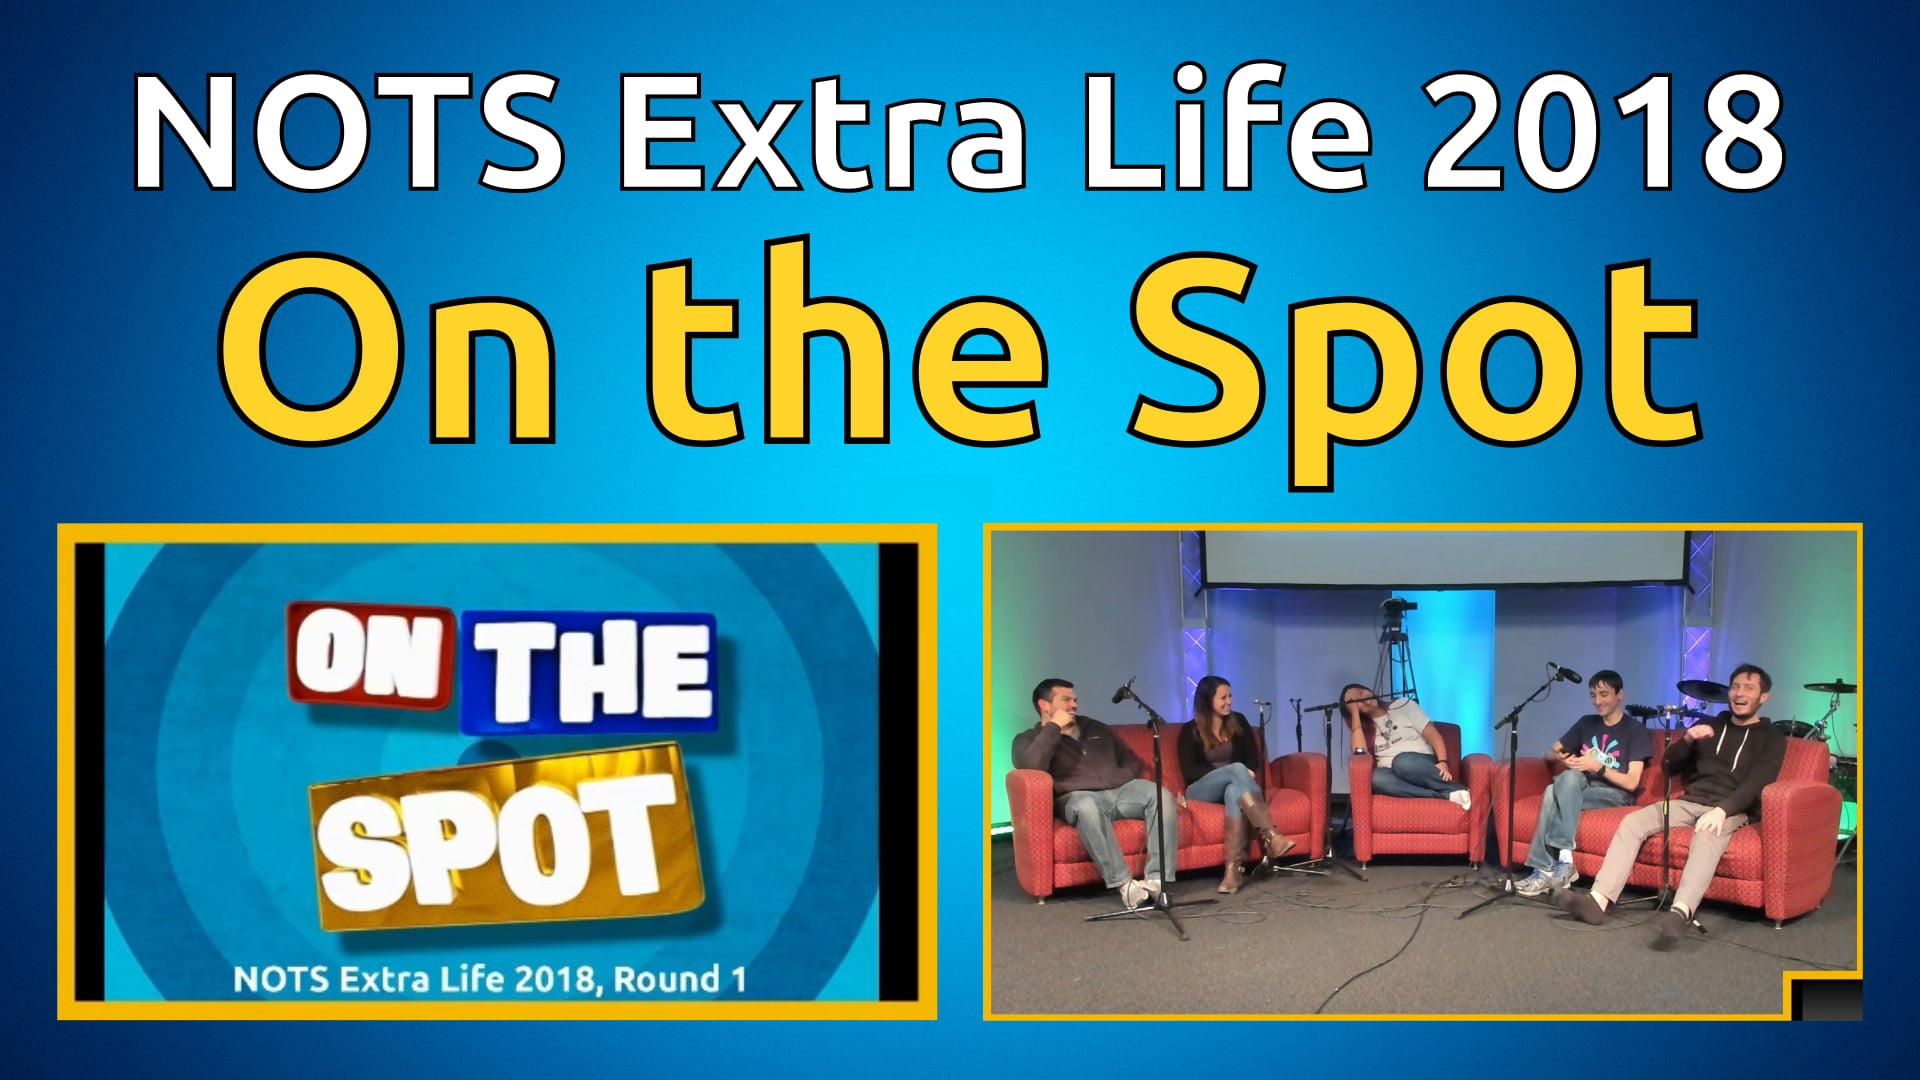 On the Spot, Round 1 - NOTS Extra Life 2018